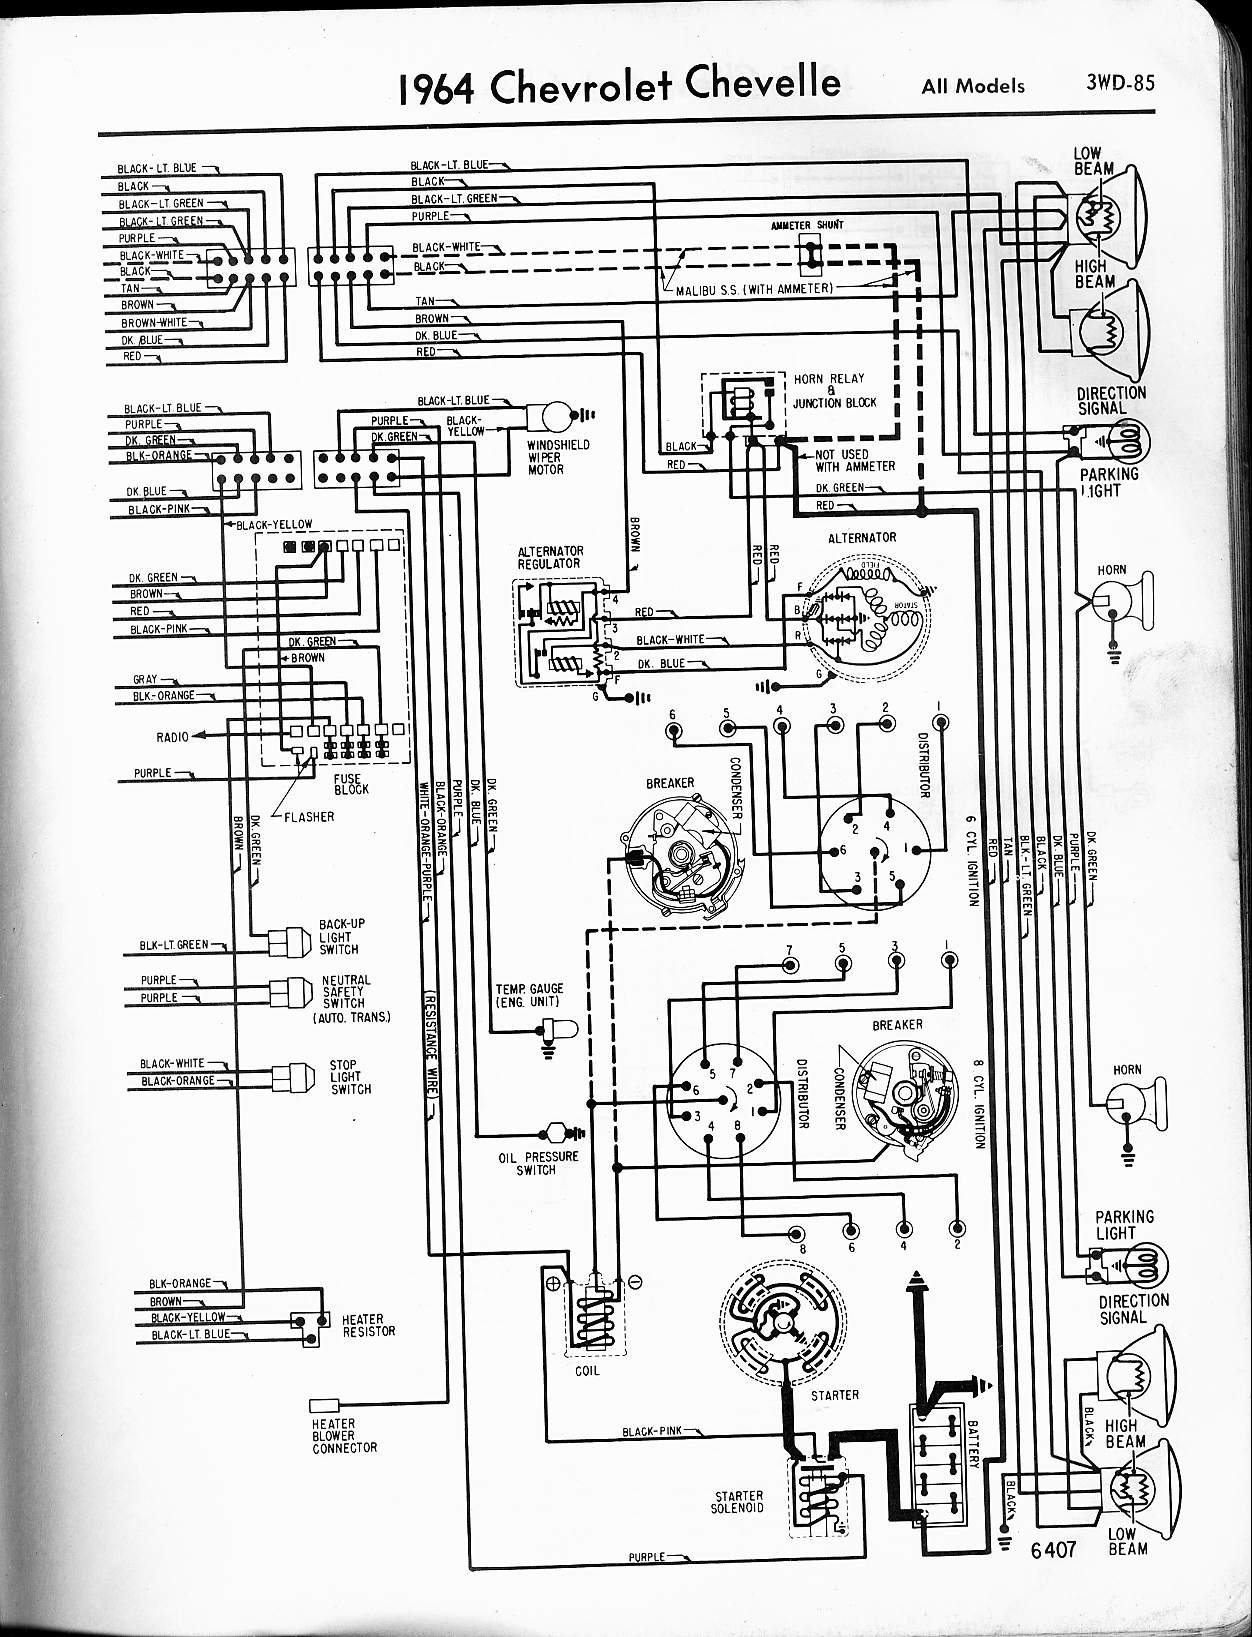 MWireChev64_3WD 085 chevy diagrams Ford Alternator Wiring Diagram at bayanpartner.co